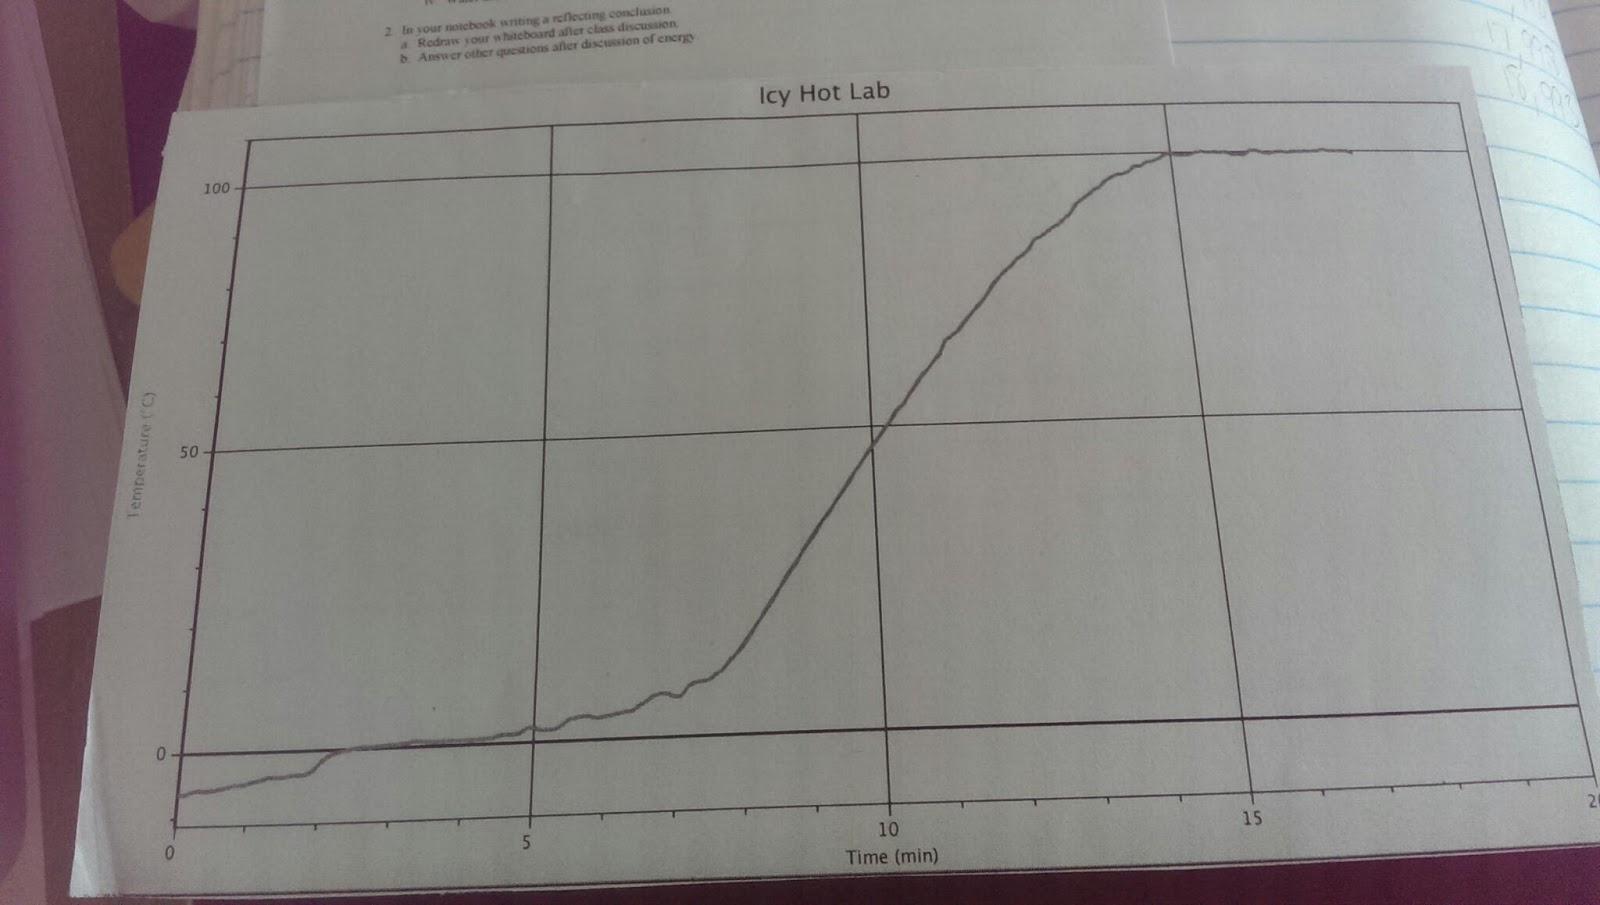 Christine S Chem Blog Lol Graphs Quantitative Energy And Icy Hot